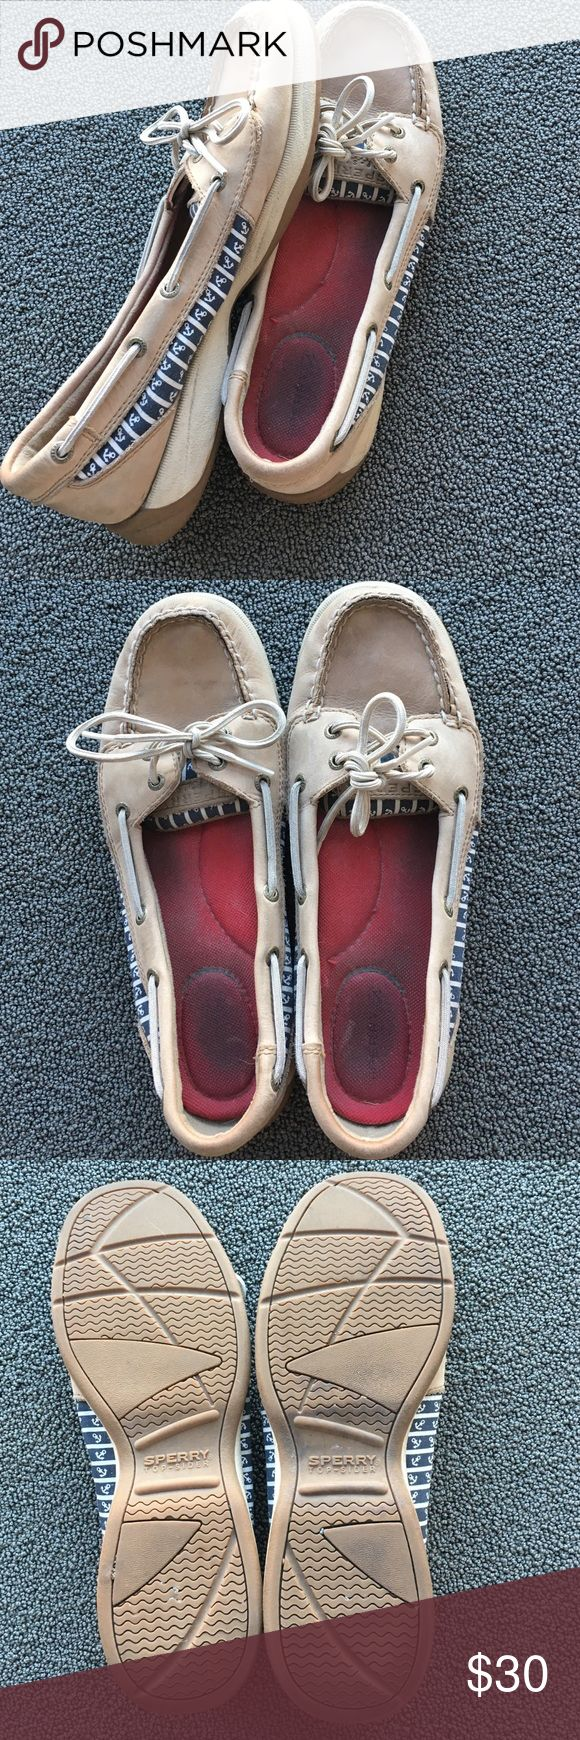 Nautical top sided sperrys Navy and white anchor Sperrys, gently used. They could be cleaned up a bit, and the insoles can be replaced, but otherwise good condition. Sperry Top-Sider Shoes Flats & Loafers